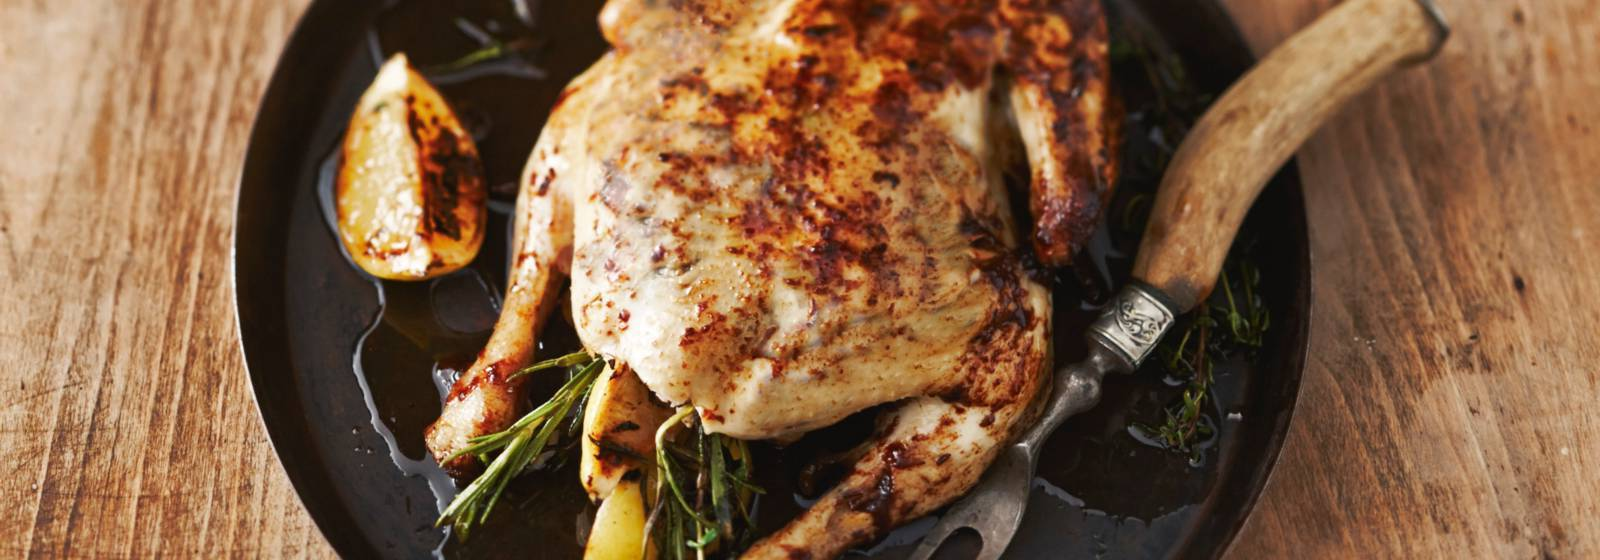 Chicken stuffed with herbs and lemon